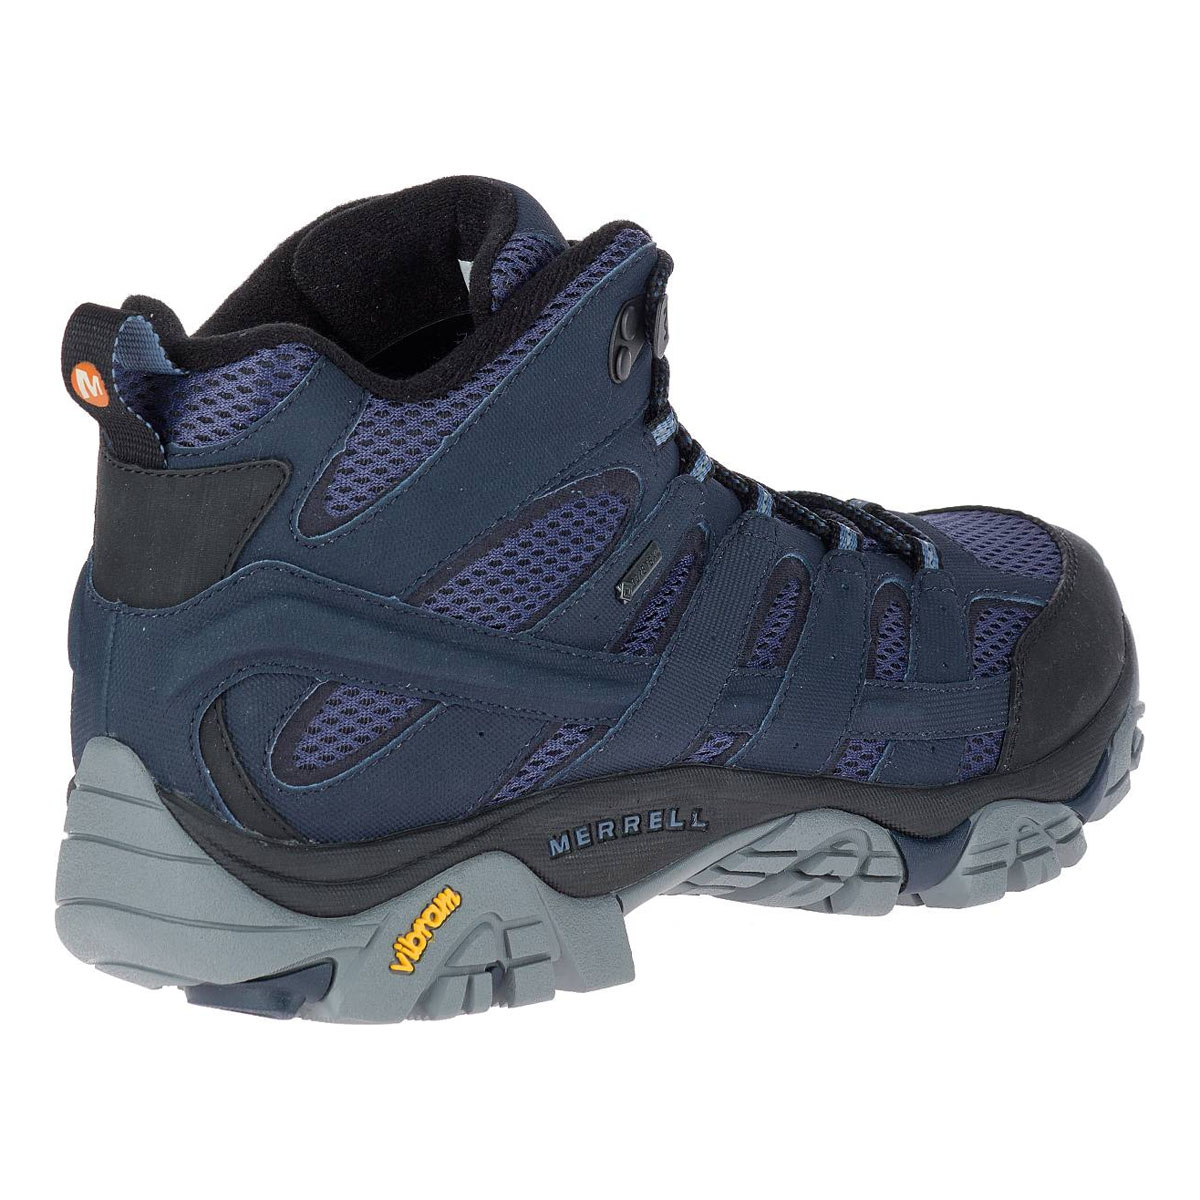 super populaire 1f496 35afc Merrell Moab 2 MID GTX Walking Boots (Men's) - Navy